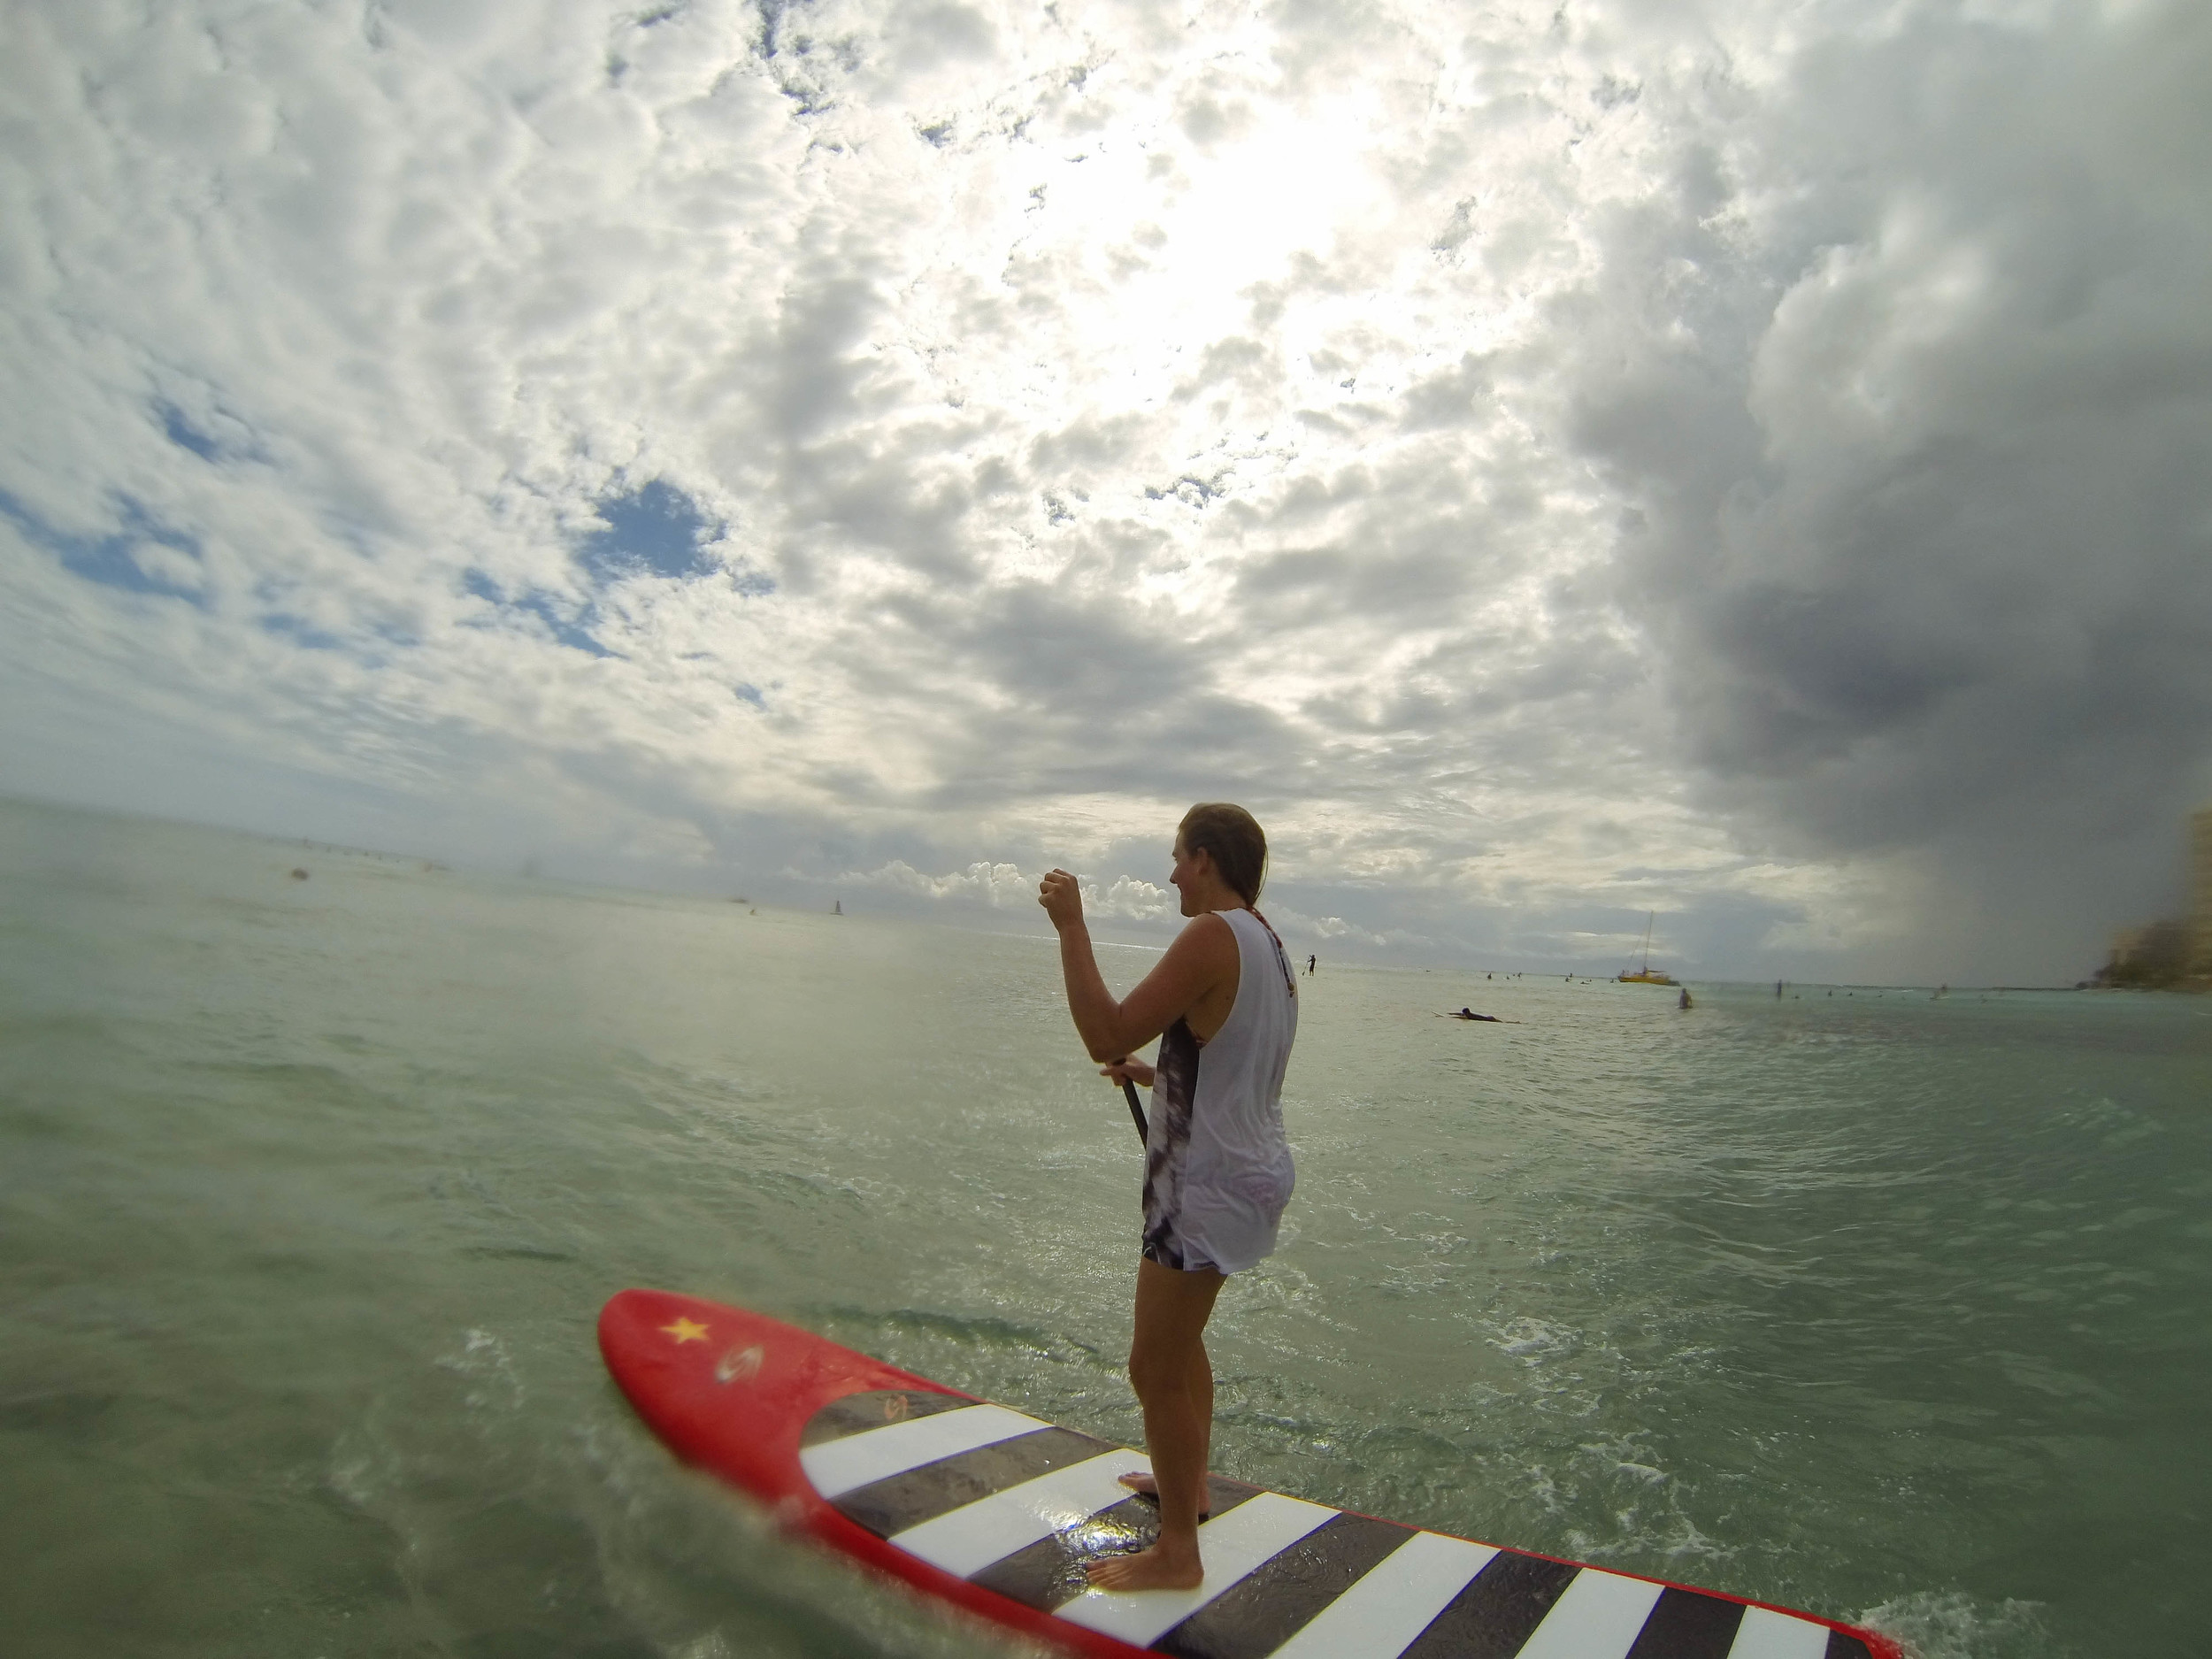 SUP at Waikiki Beach, Oahu.